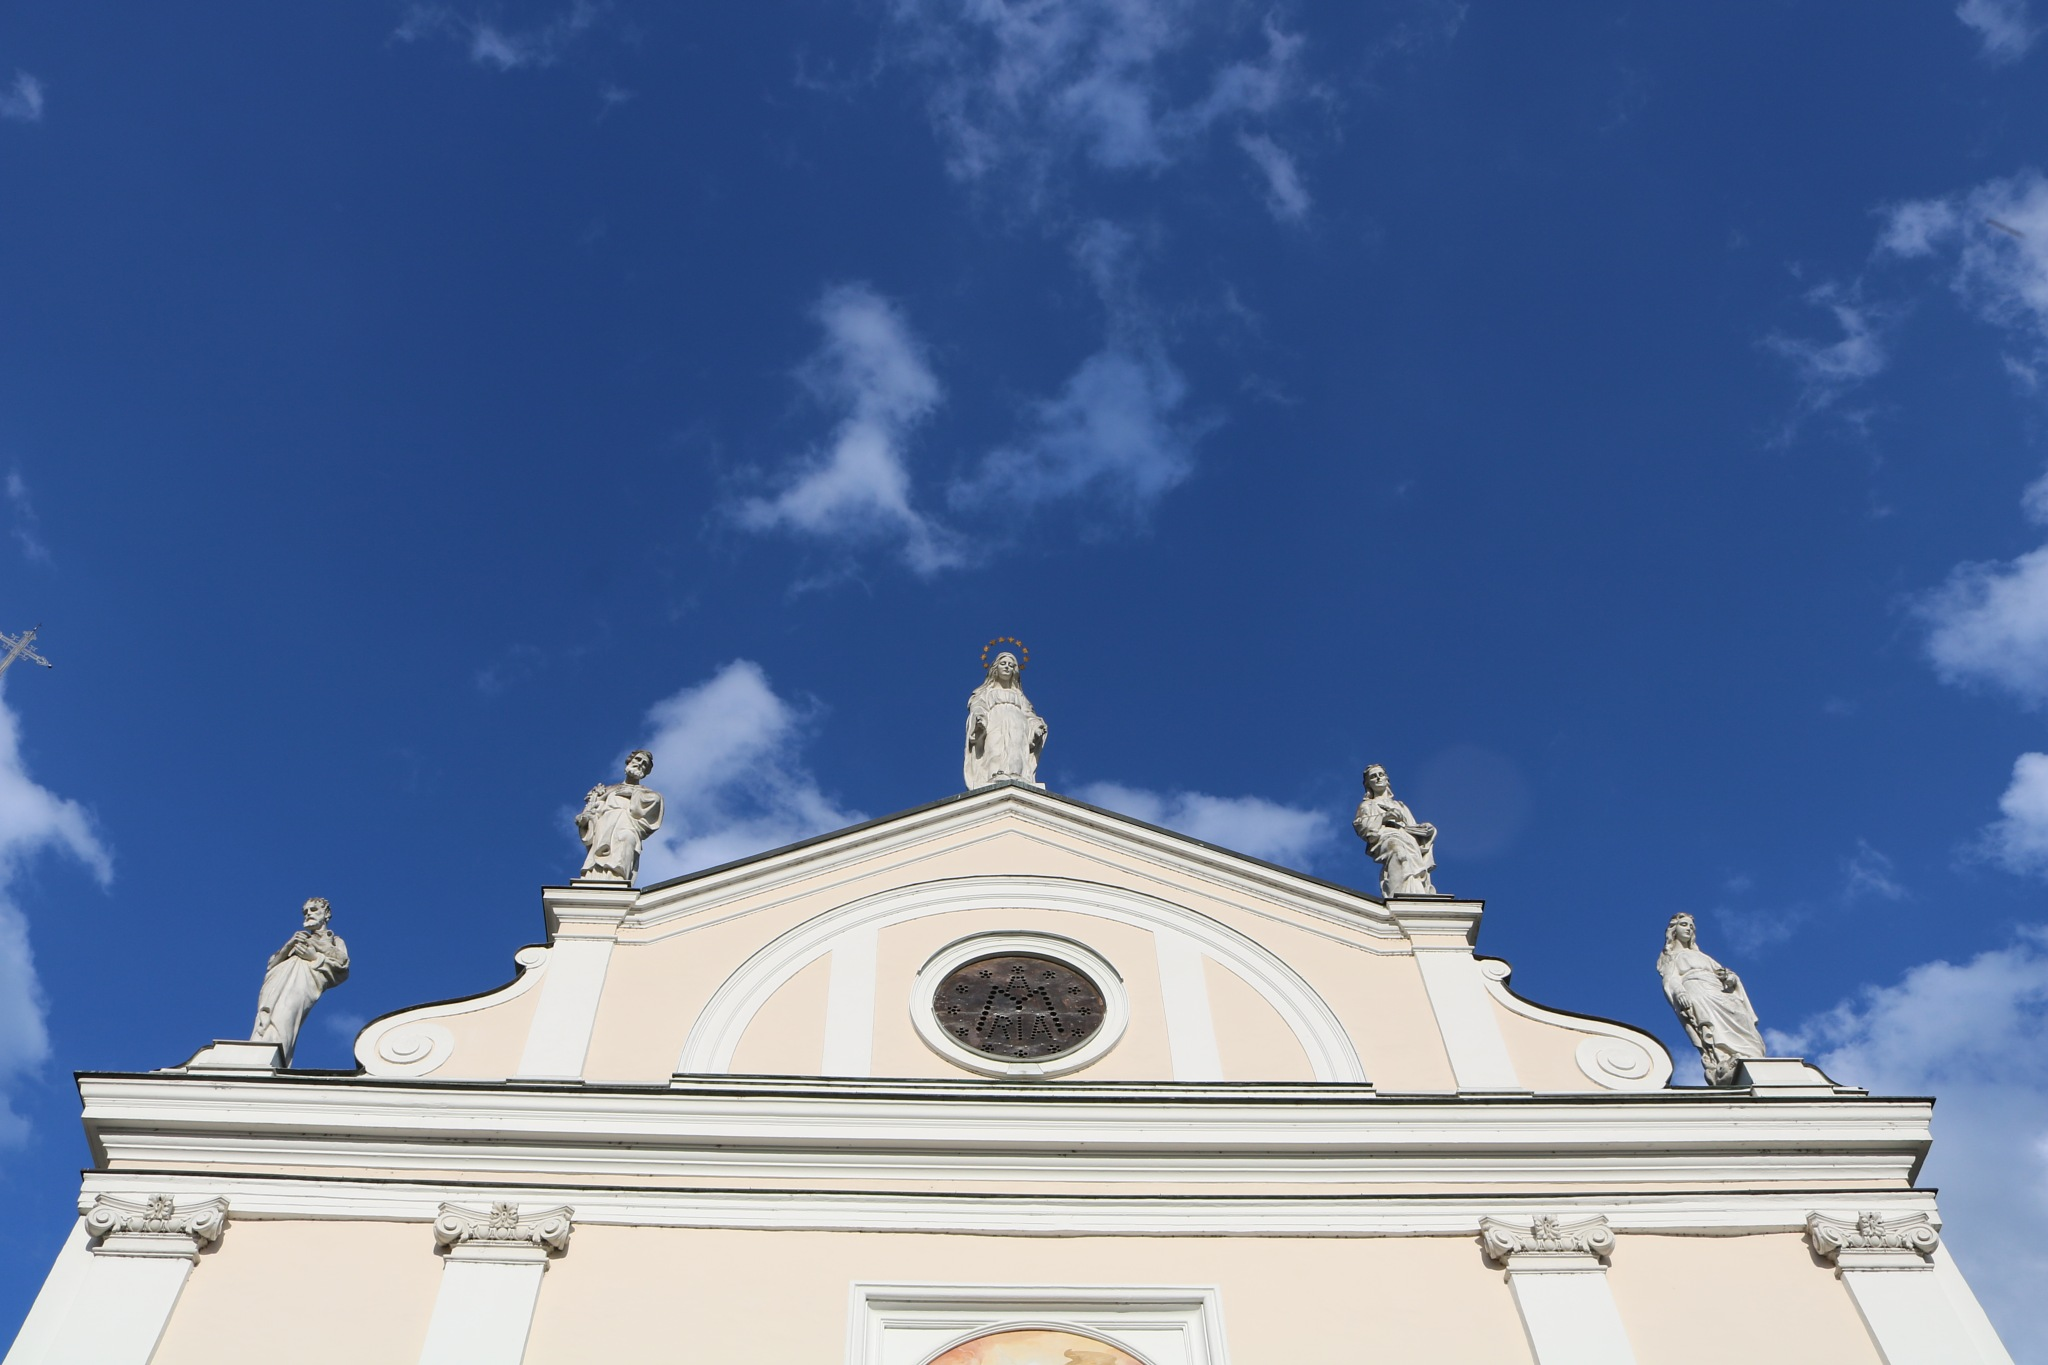 Church of Mary's Immaculate conception by zvnktomasevic